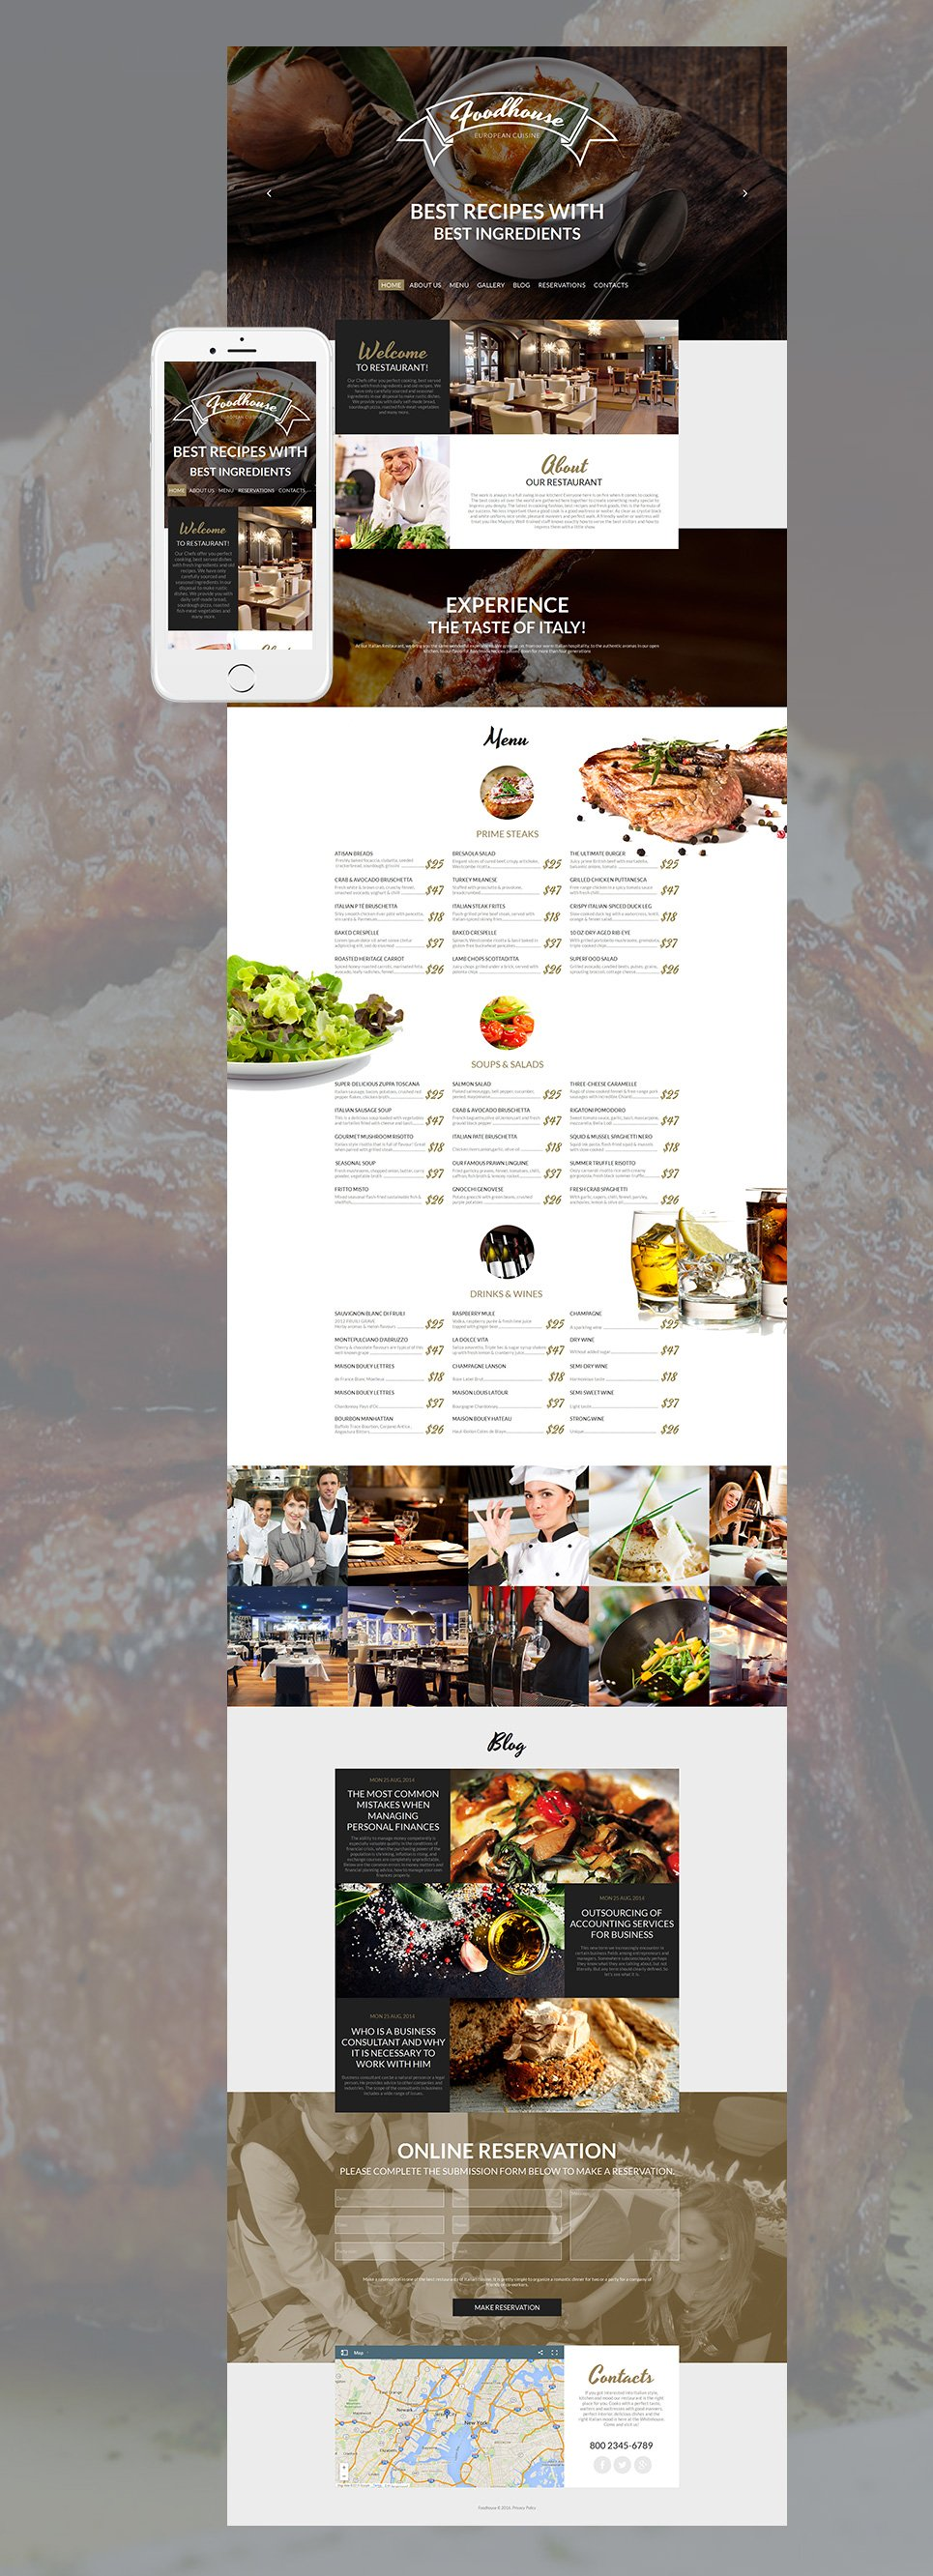 Foodhouse HTML Website Template - image